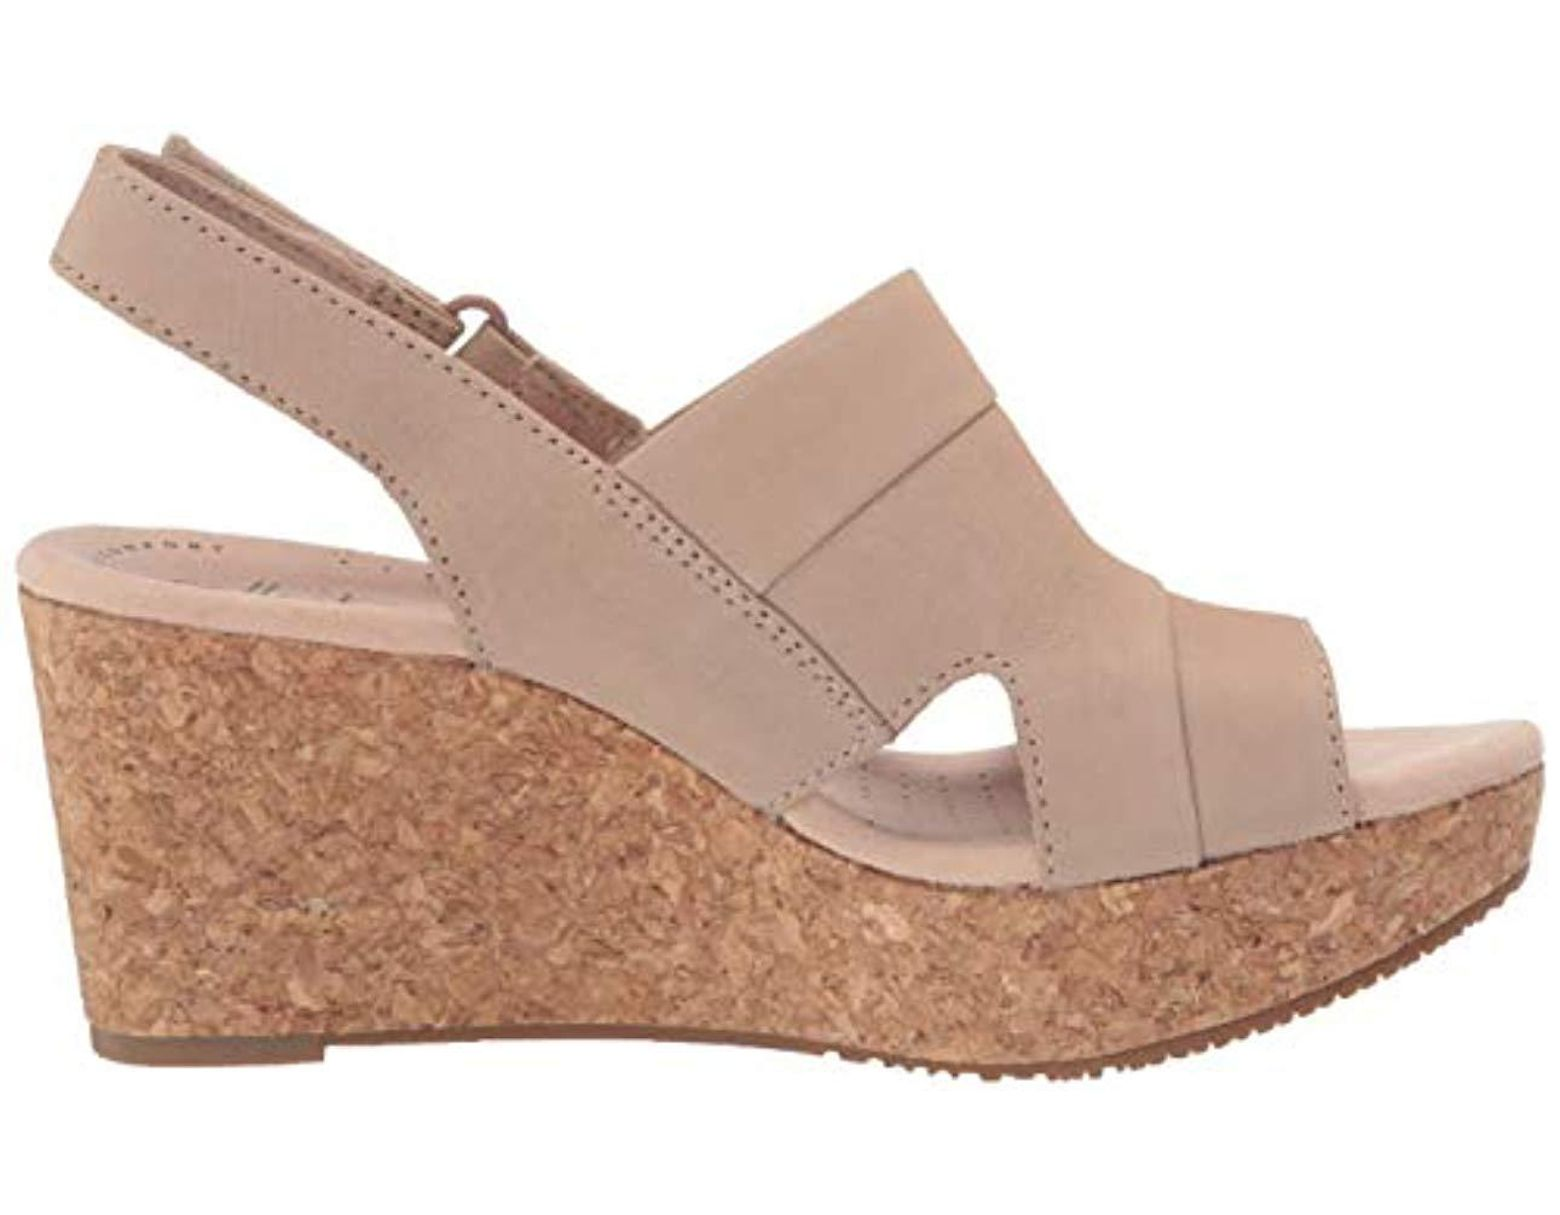 7a33a3cb9e15 Lyst - Clarks Annadel Ivory (navy Nubuck) Women s Shoes - Save 38%